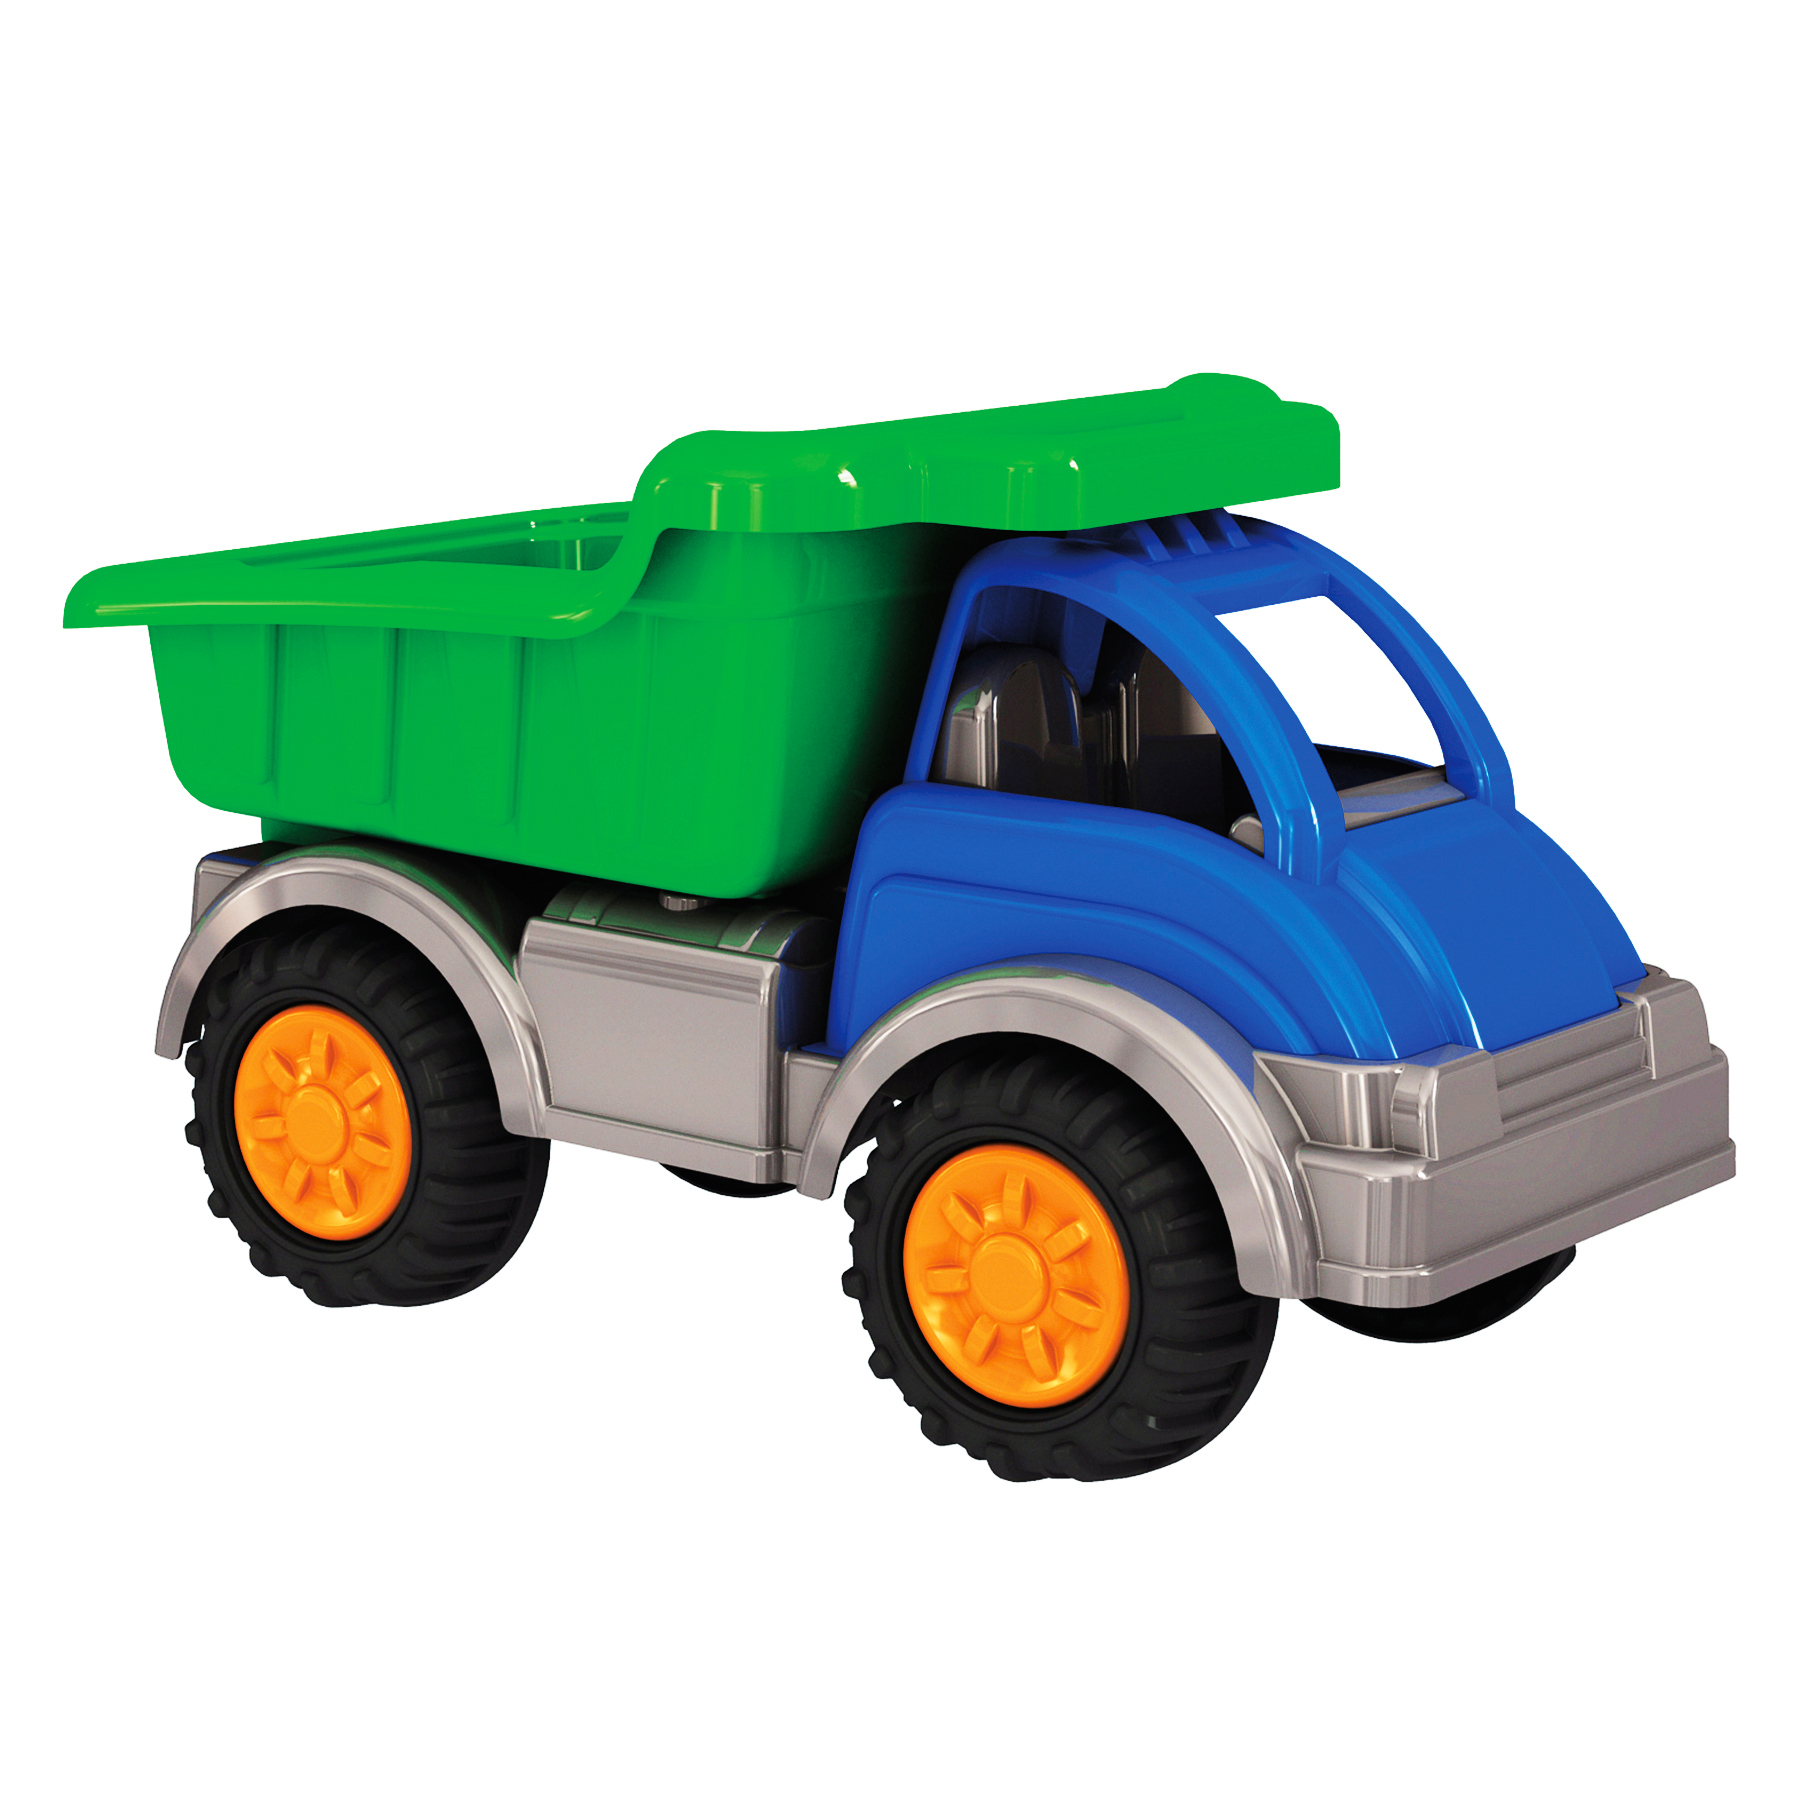 Toy Model Trucks : Gigantic dump truck